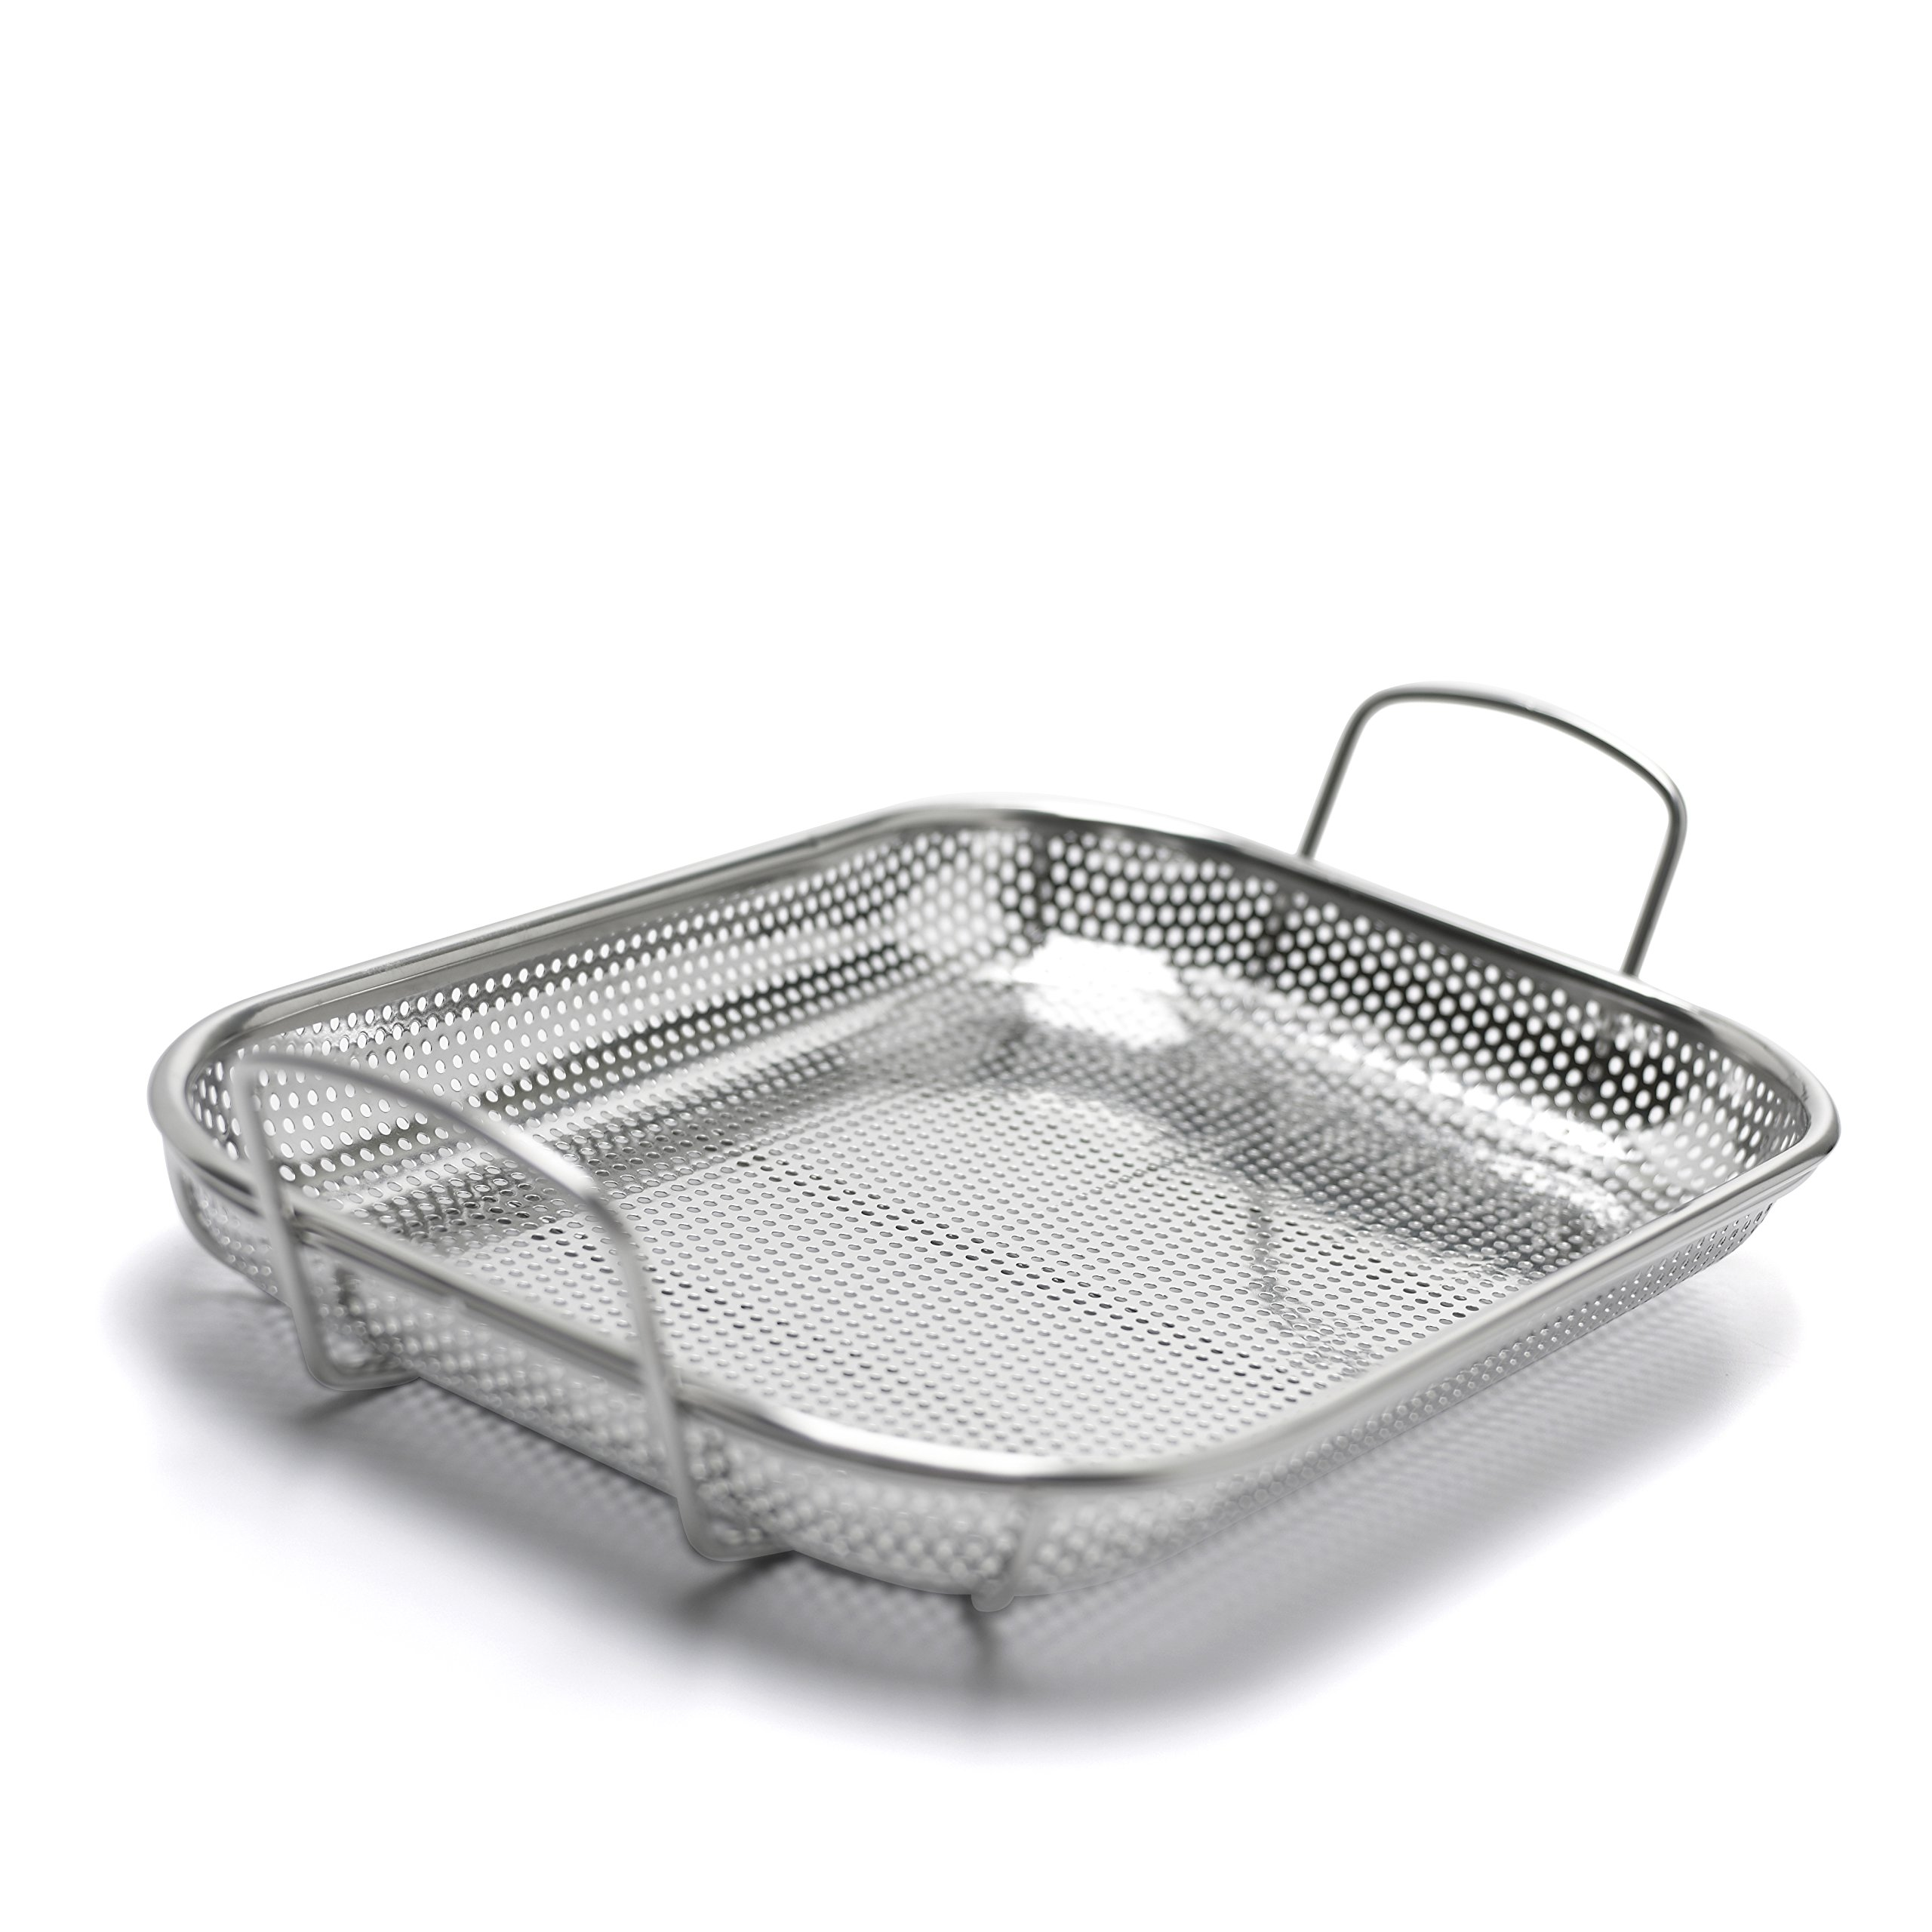 Broil King 69819 Roaster Basket by Broil King